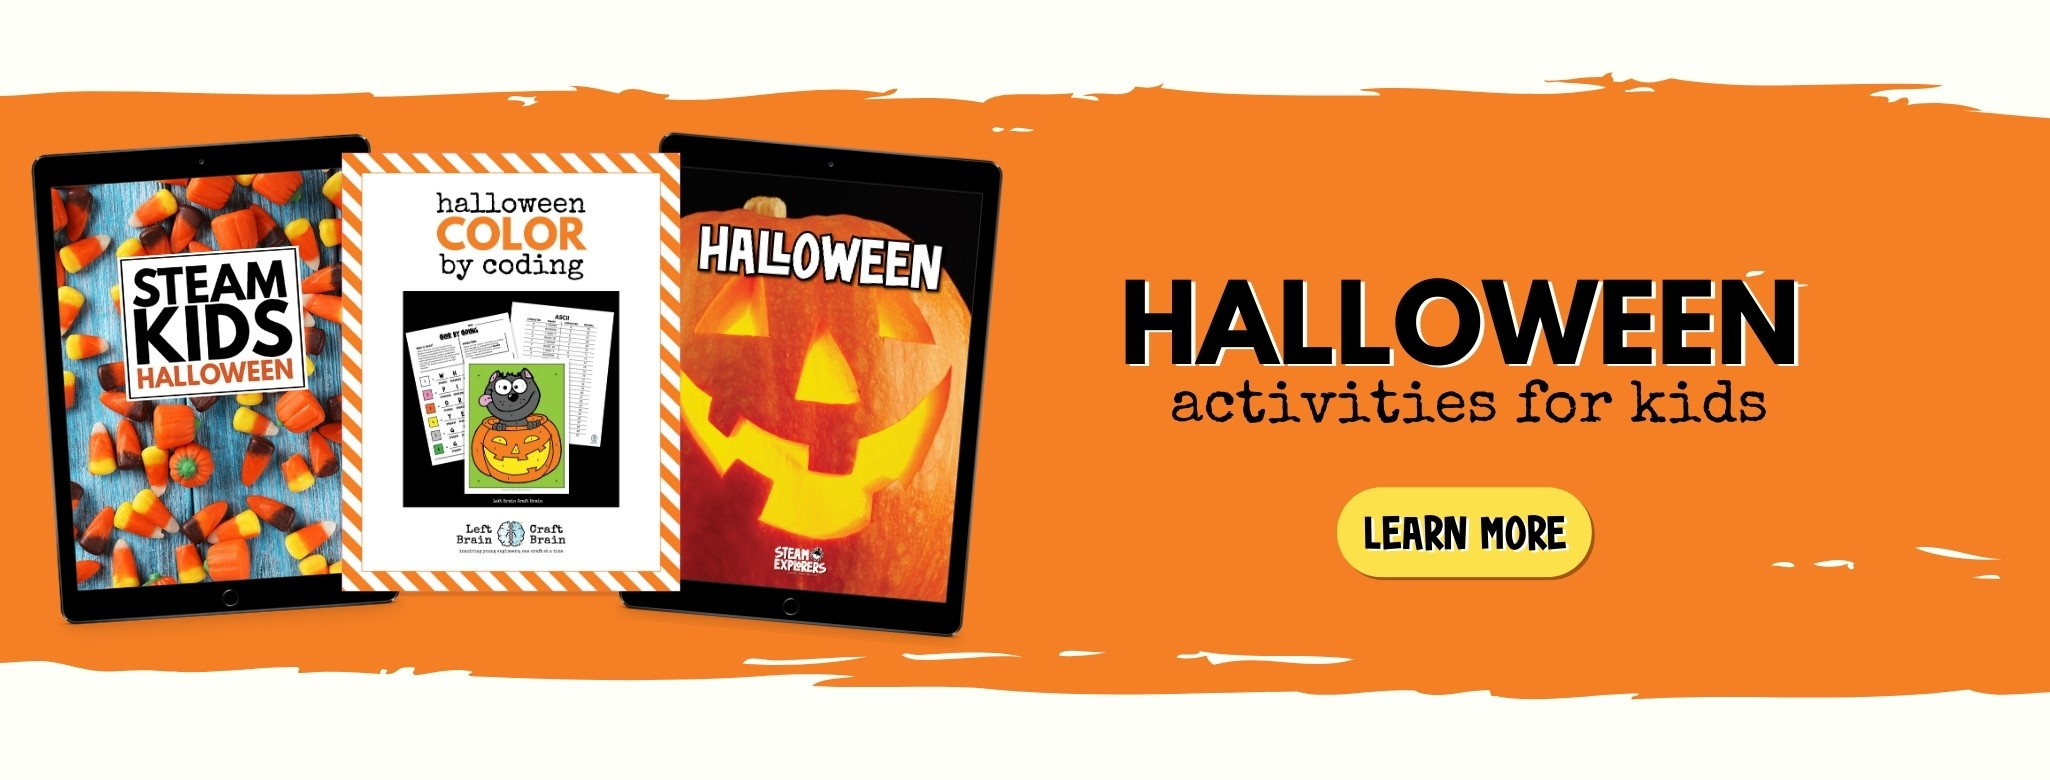 Halloween activities for kdis